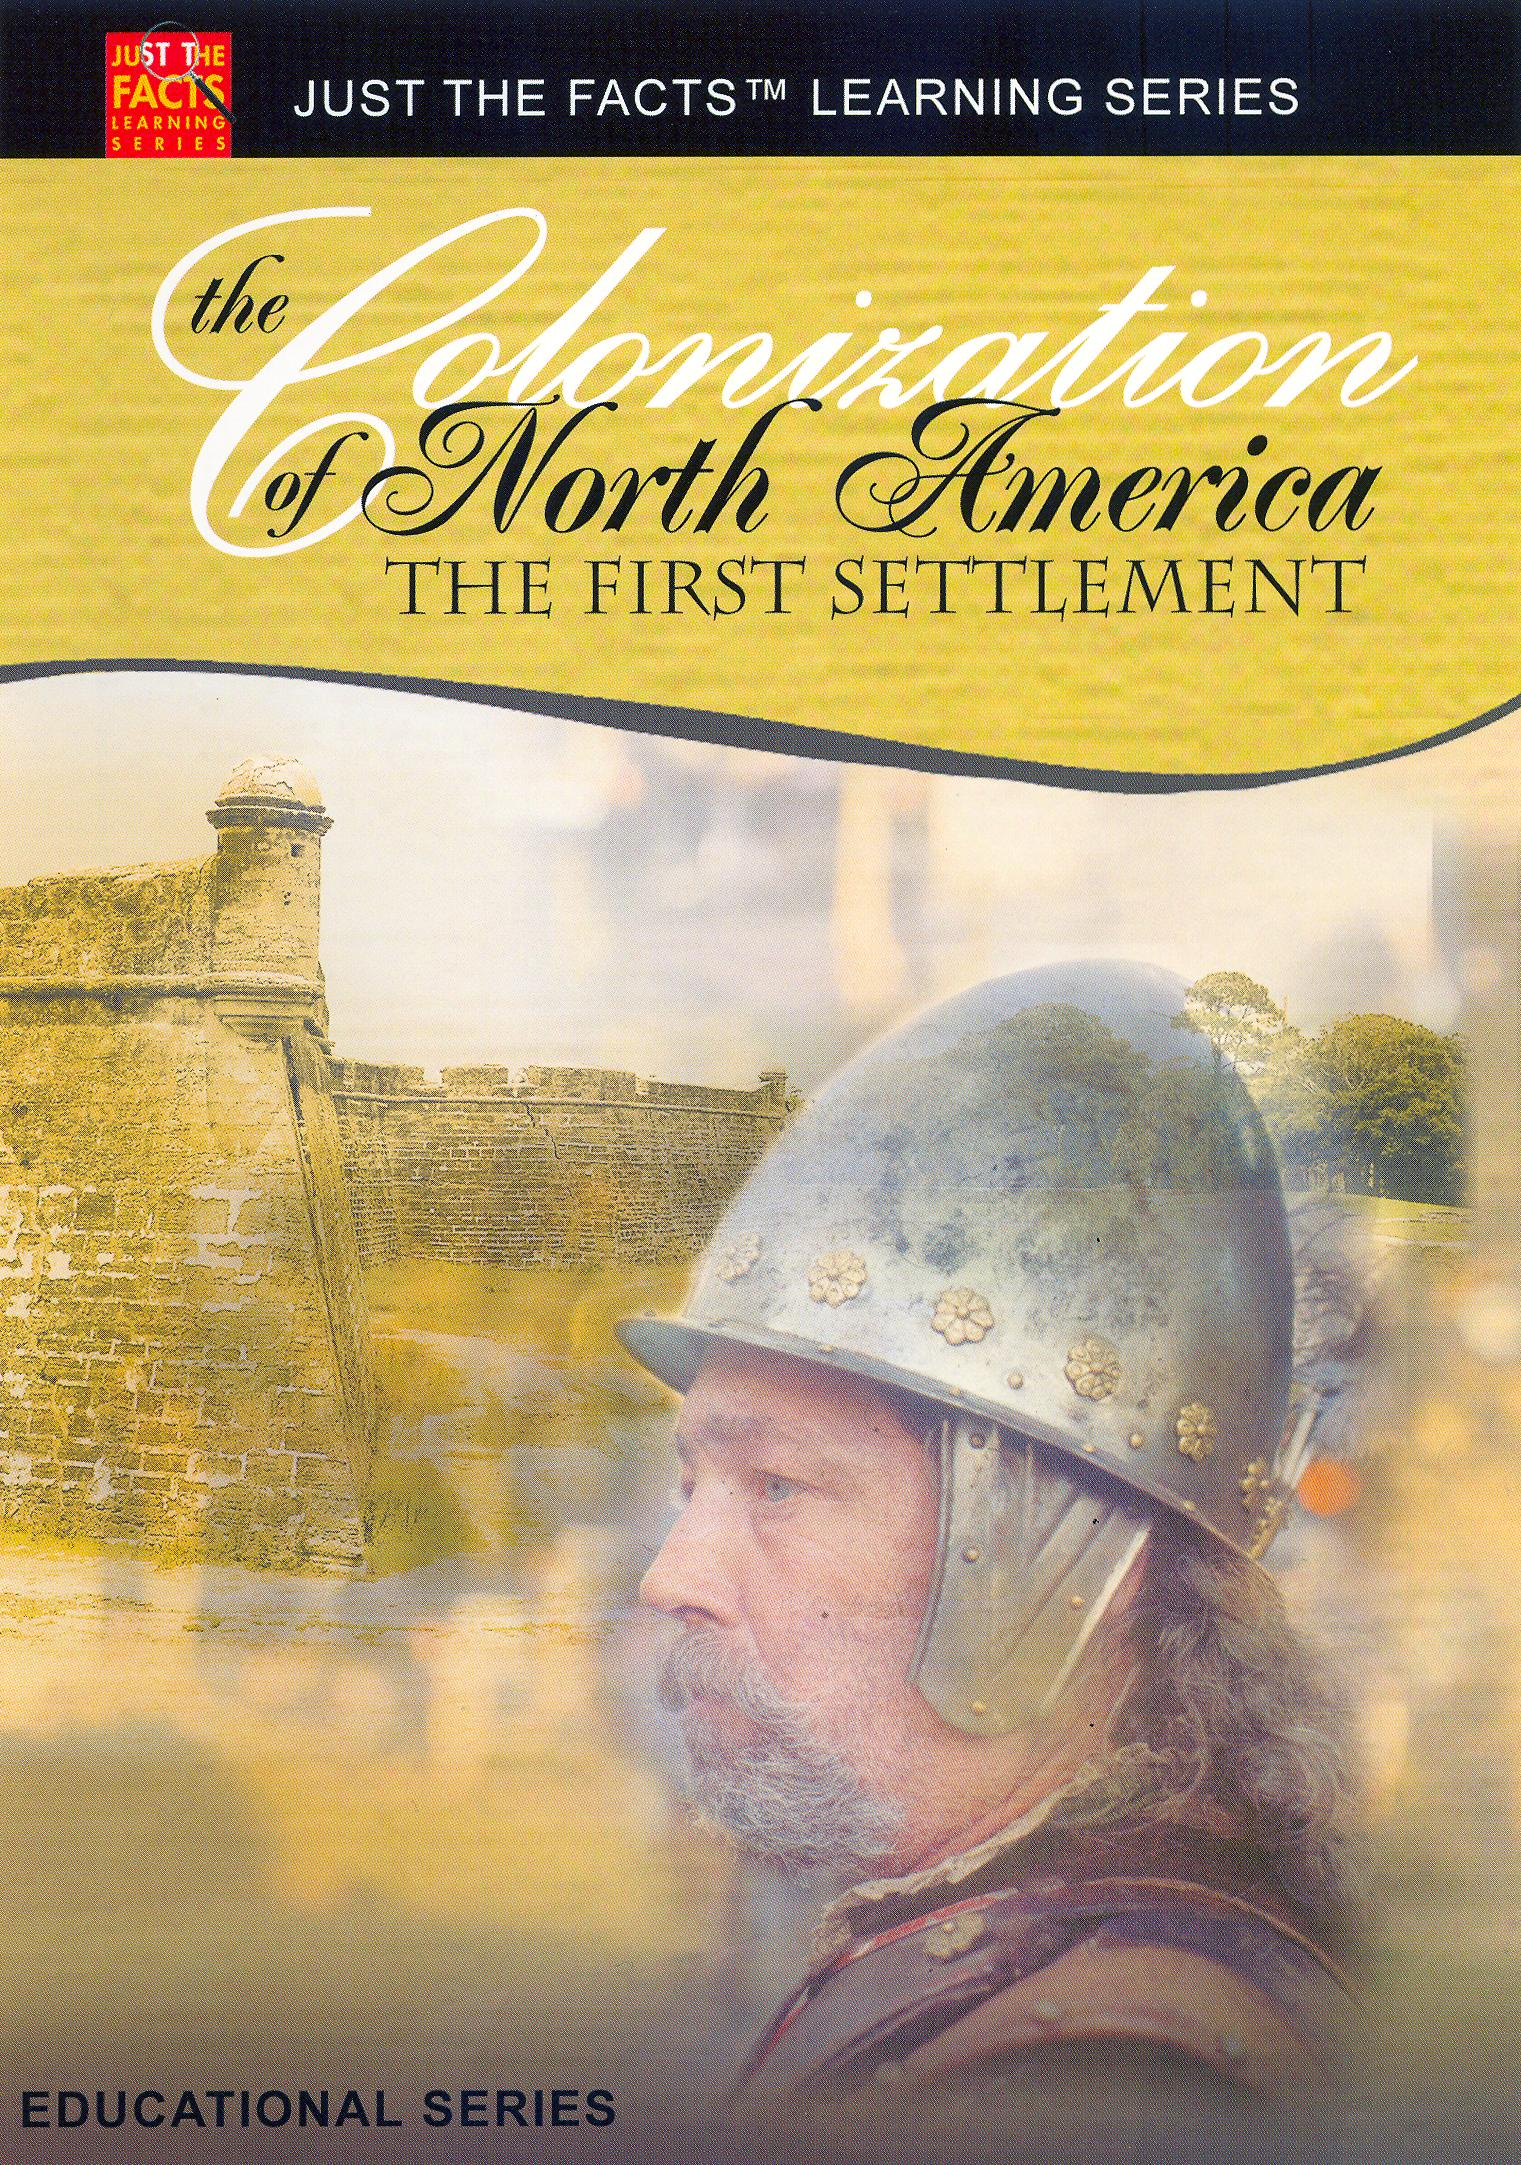 Just the Facts: The Colonization of North America - The First Settlement